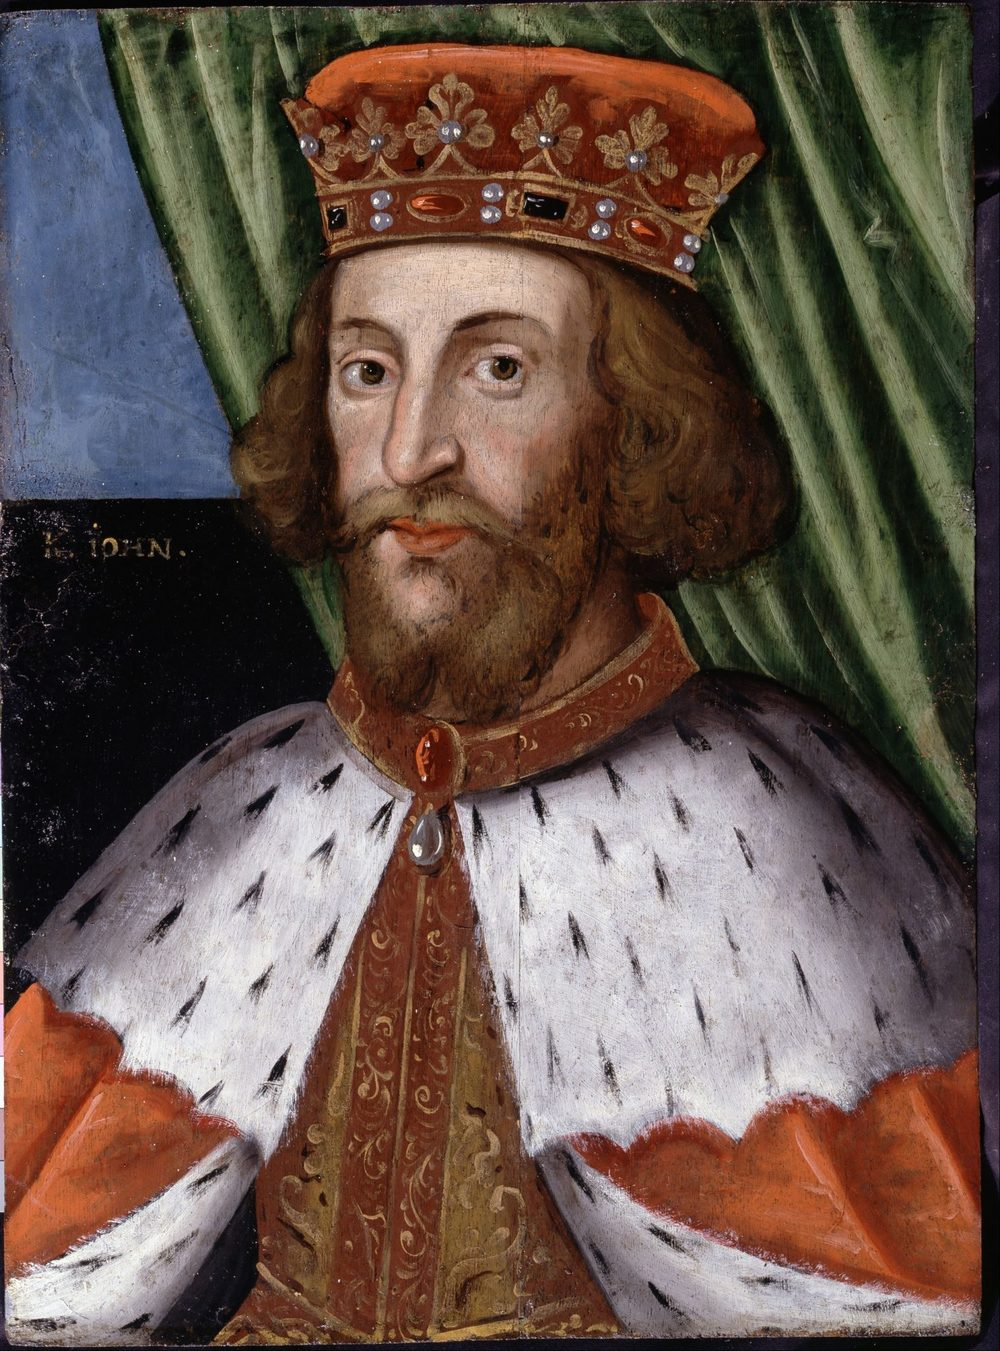 1626 painting of King John held at Dulwich Picture Gallery. Artist unknown. [Public Domain]